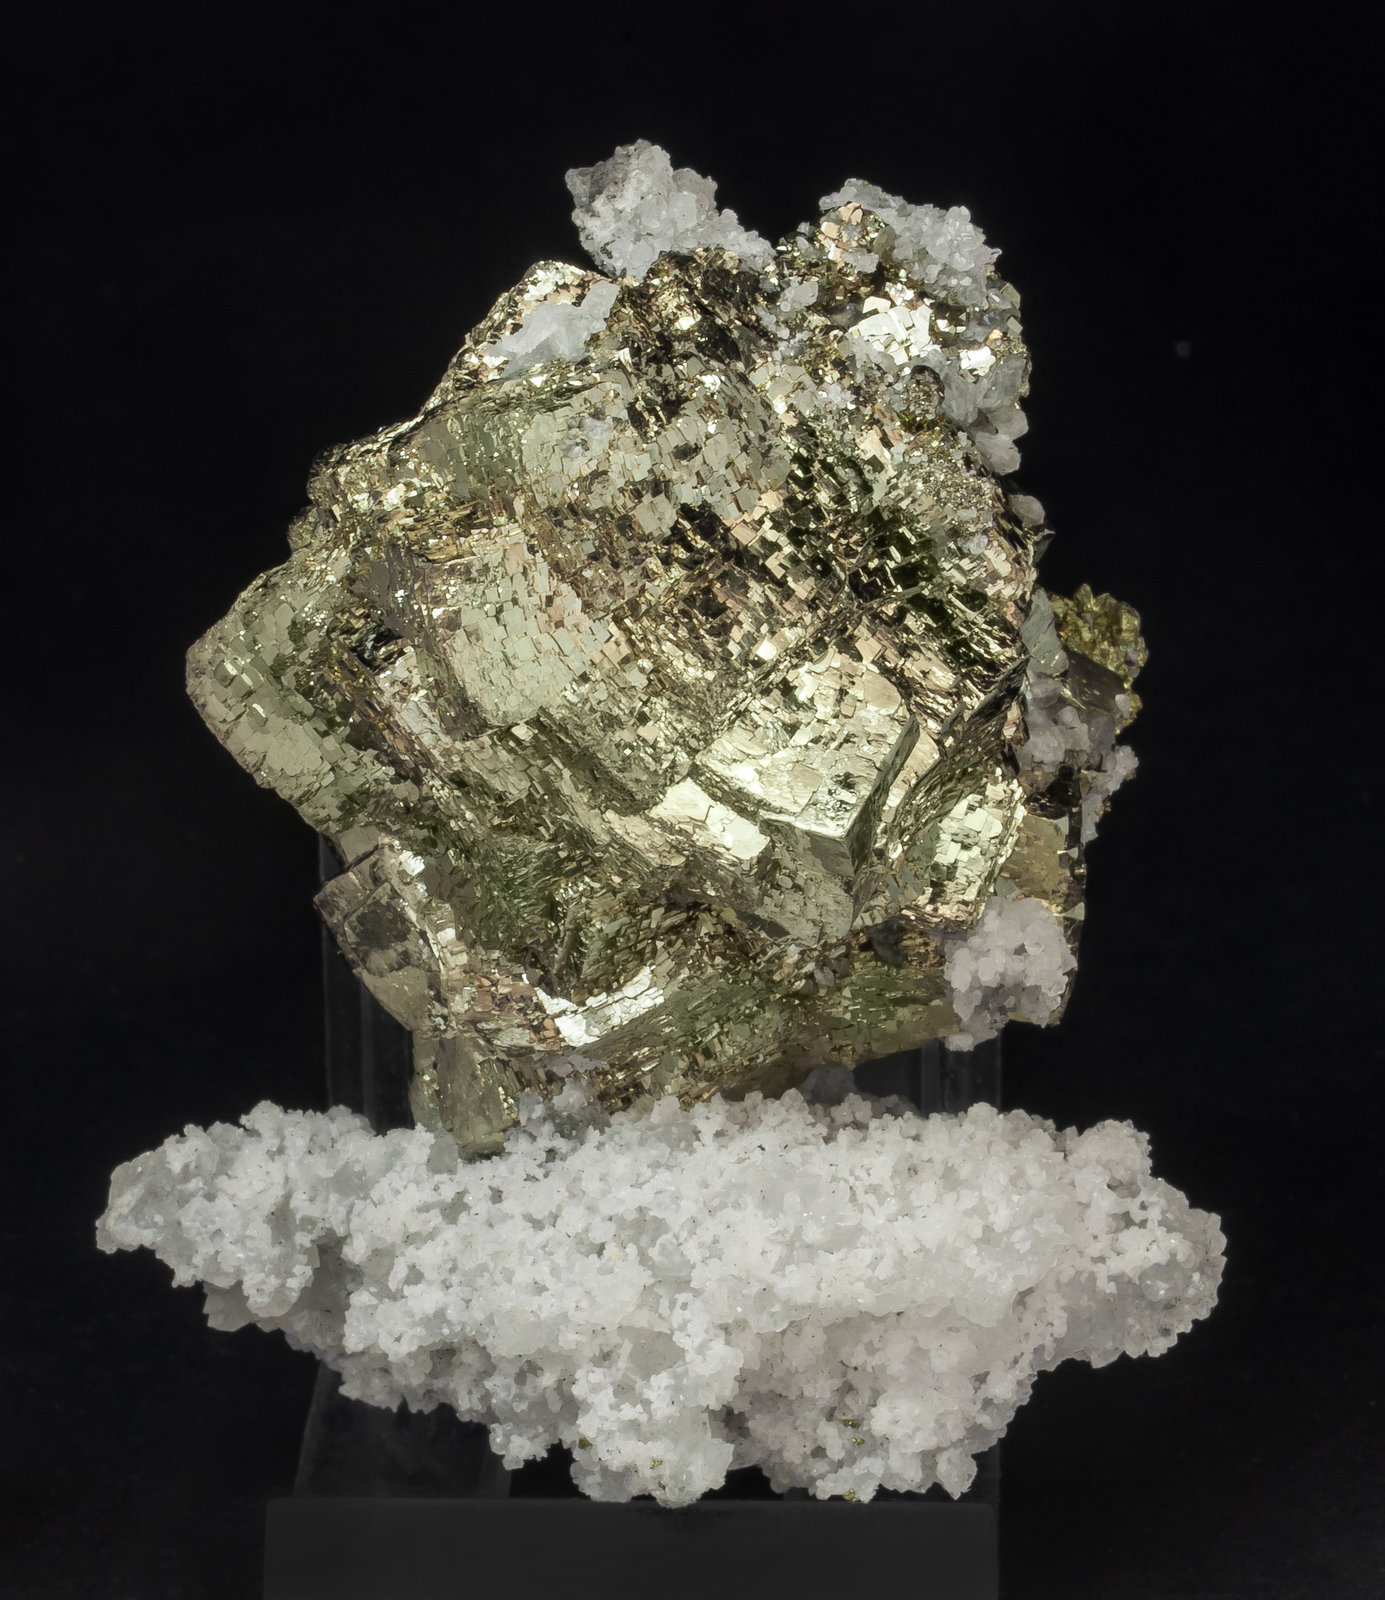 specimens/s_imagesAM0/Pyrite-ET47AM0f.jpg